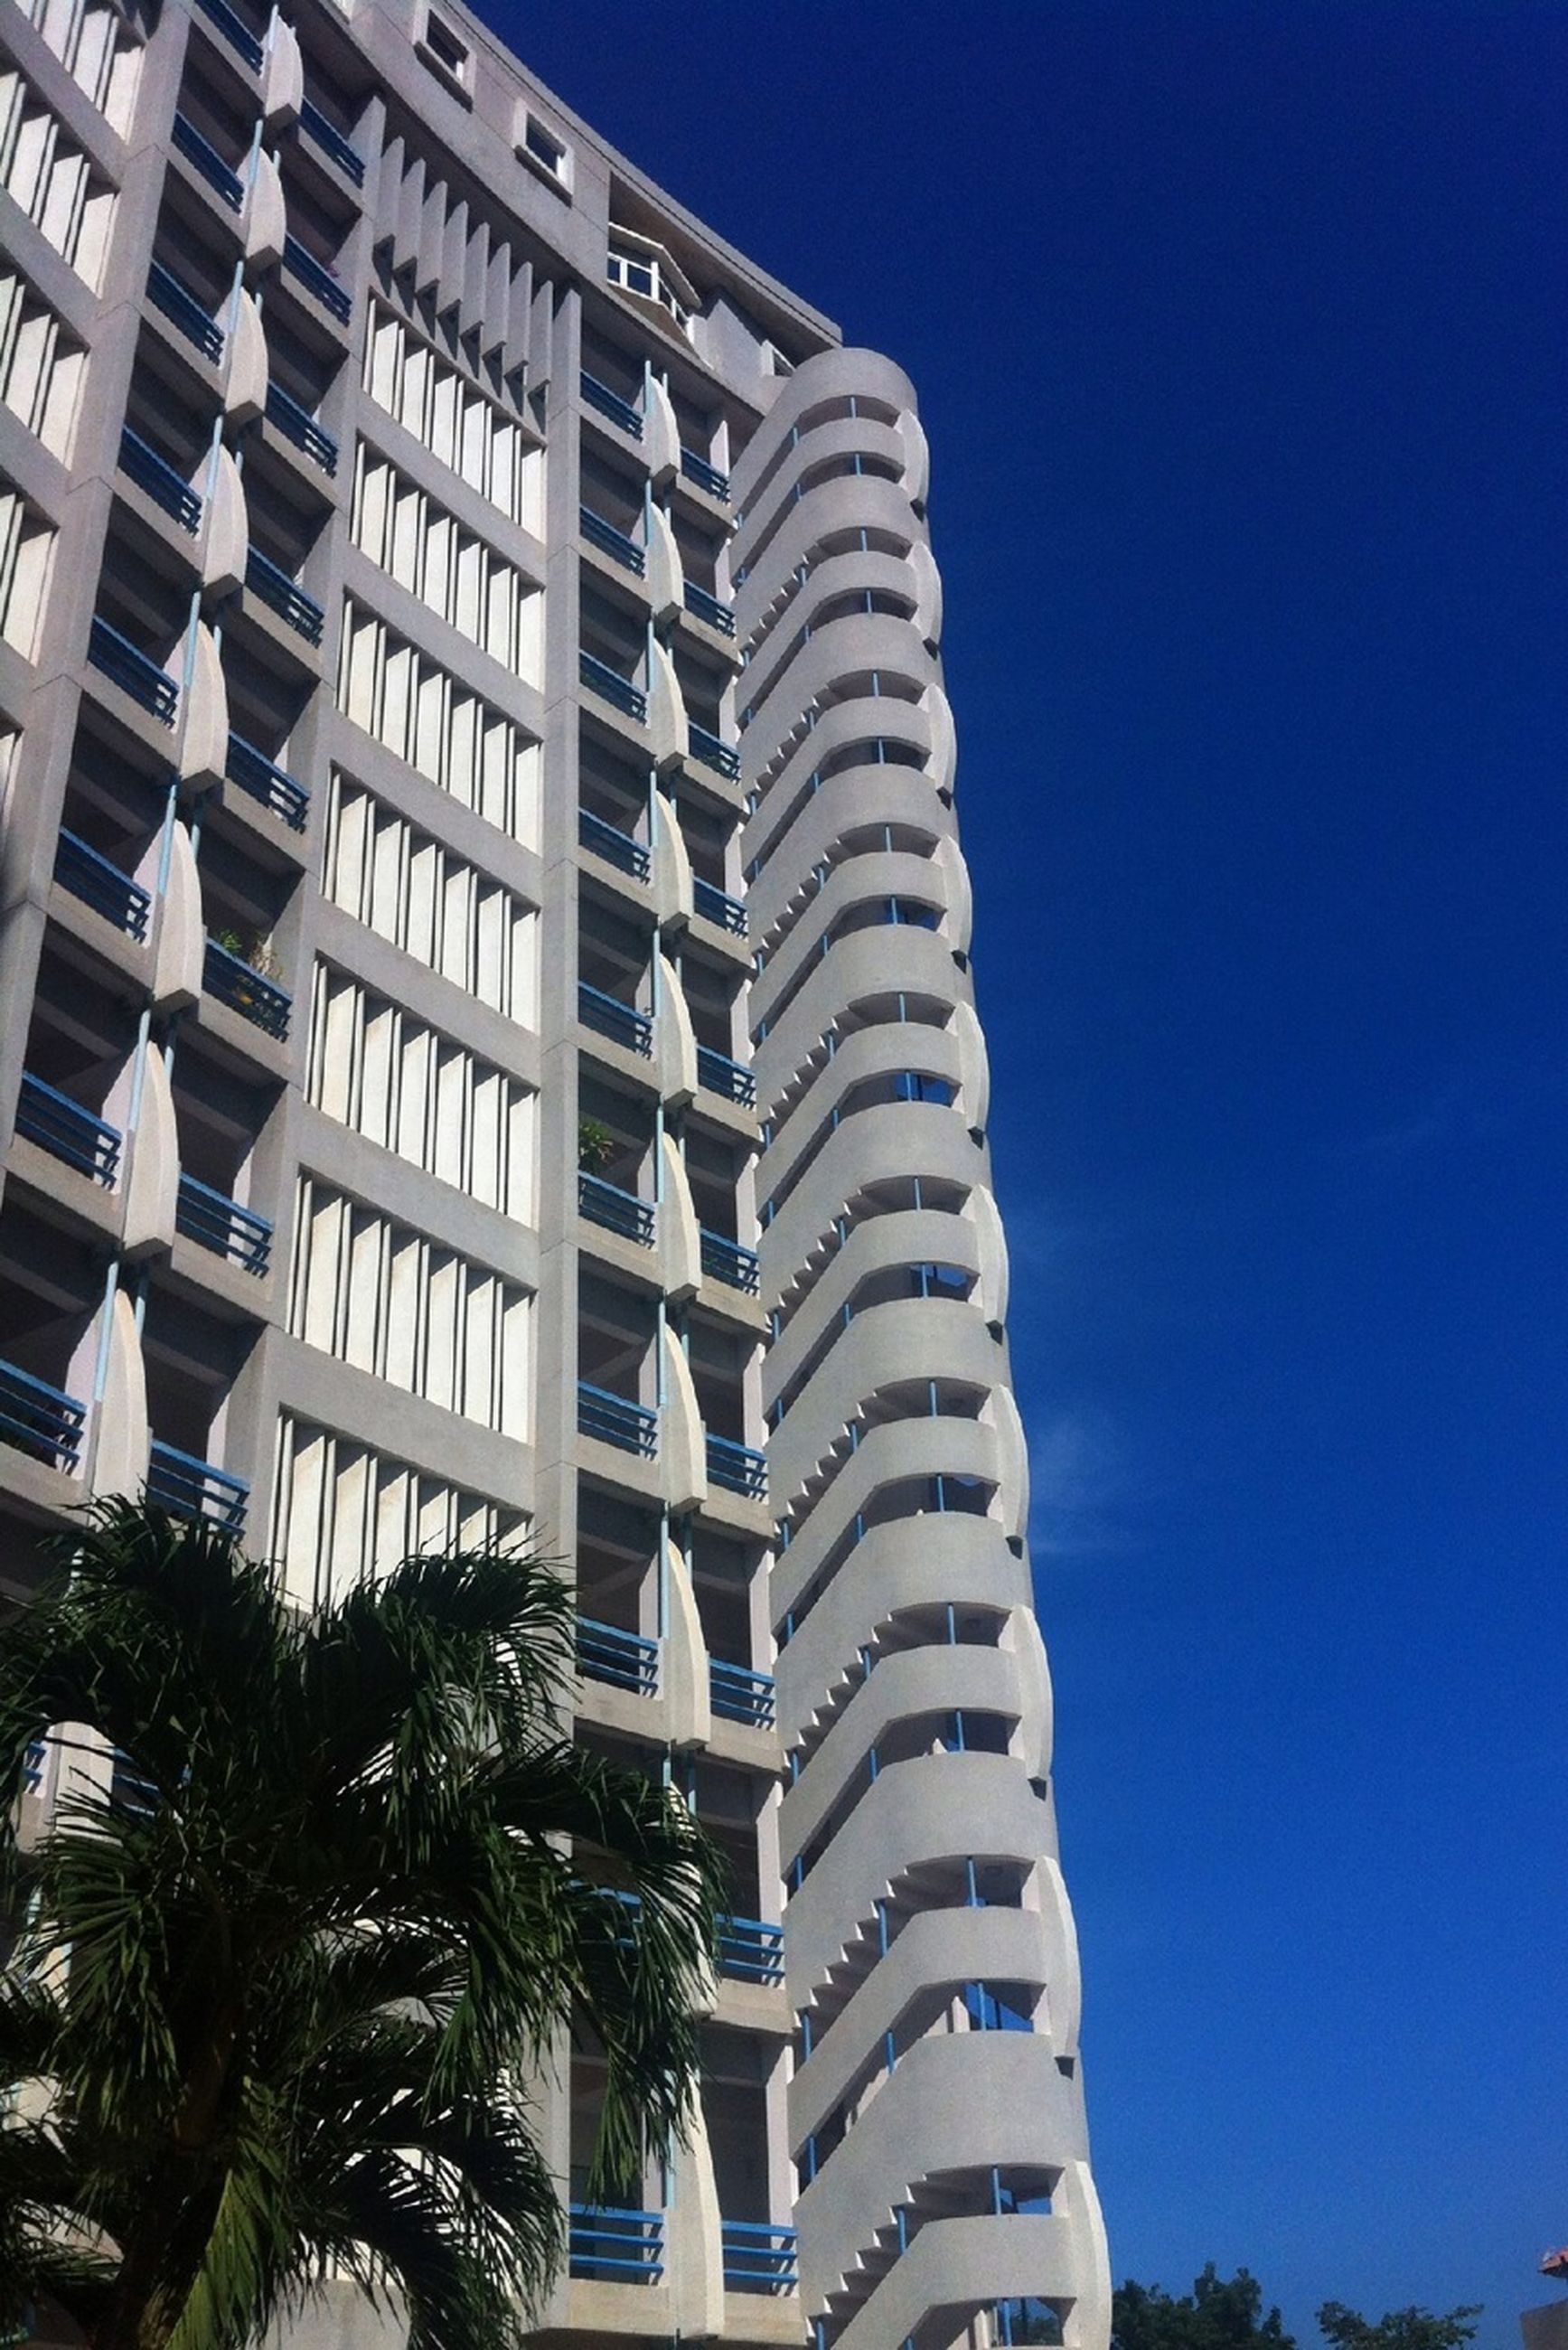 building exterior, architecture, built structure, city, low angle view, clear sky, building, residential building, blue, modern, residential structure, office building, apartment, sky, window, skyscraper, tall - high, tree, outdoors, city life